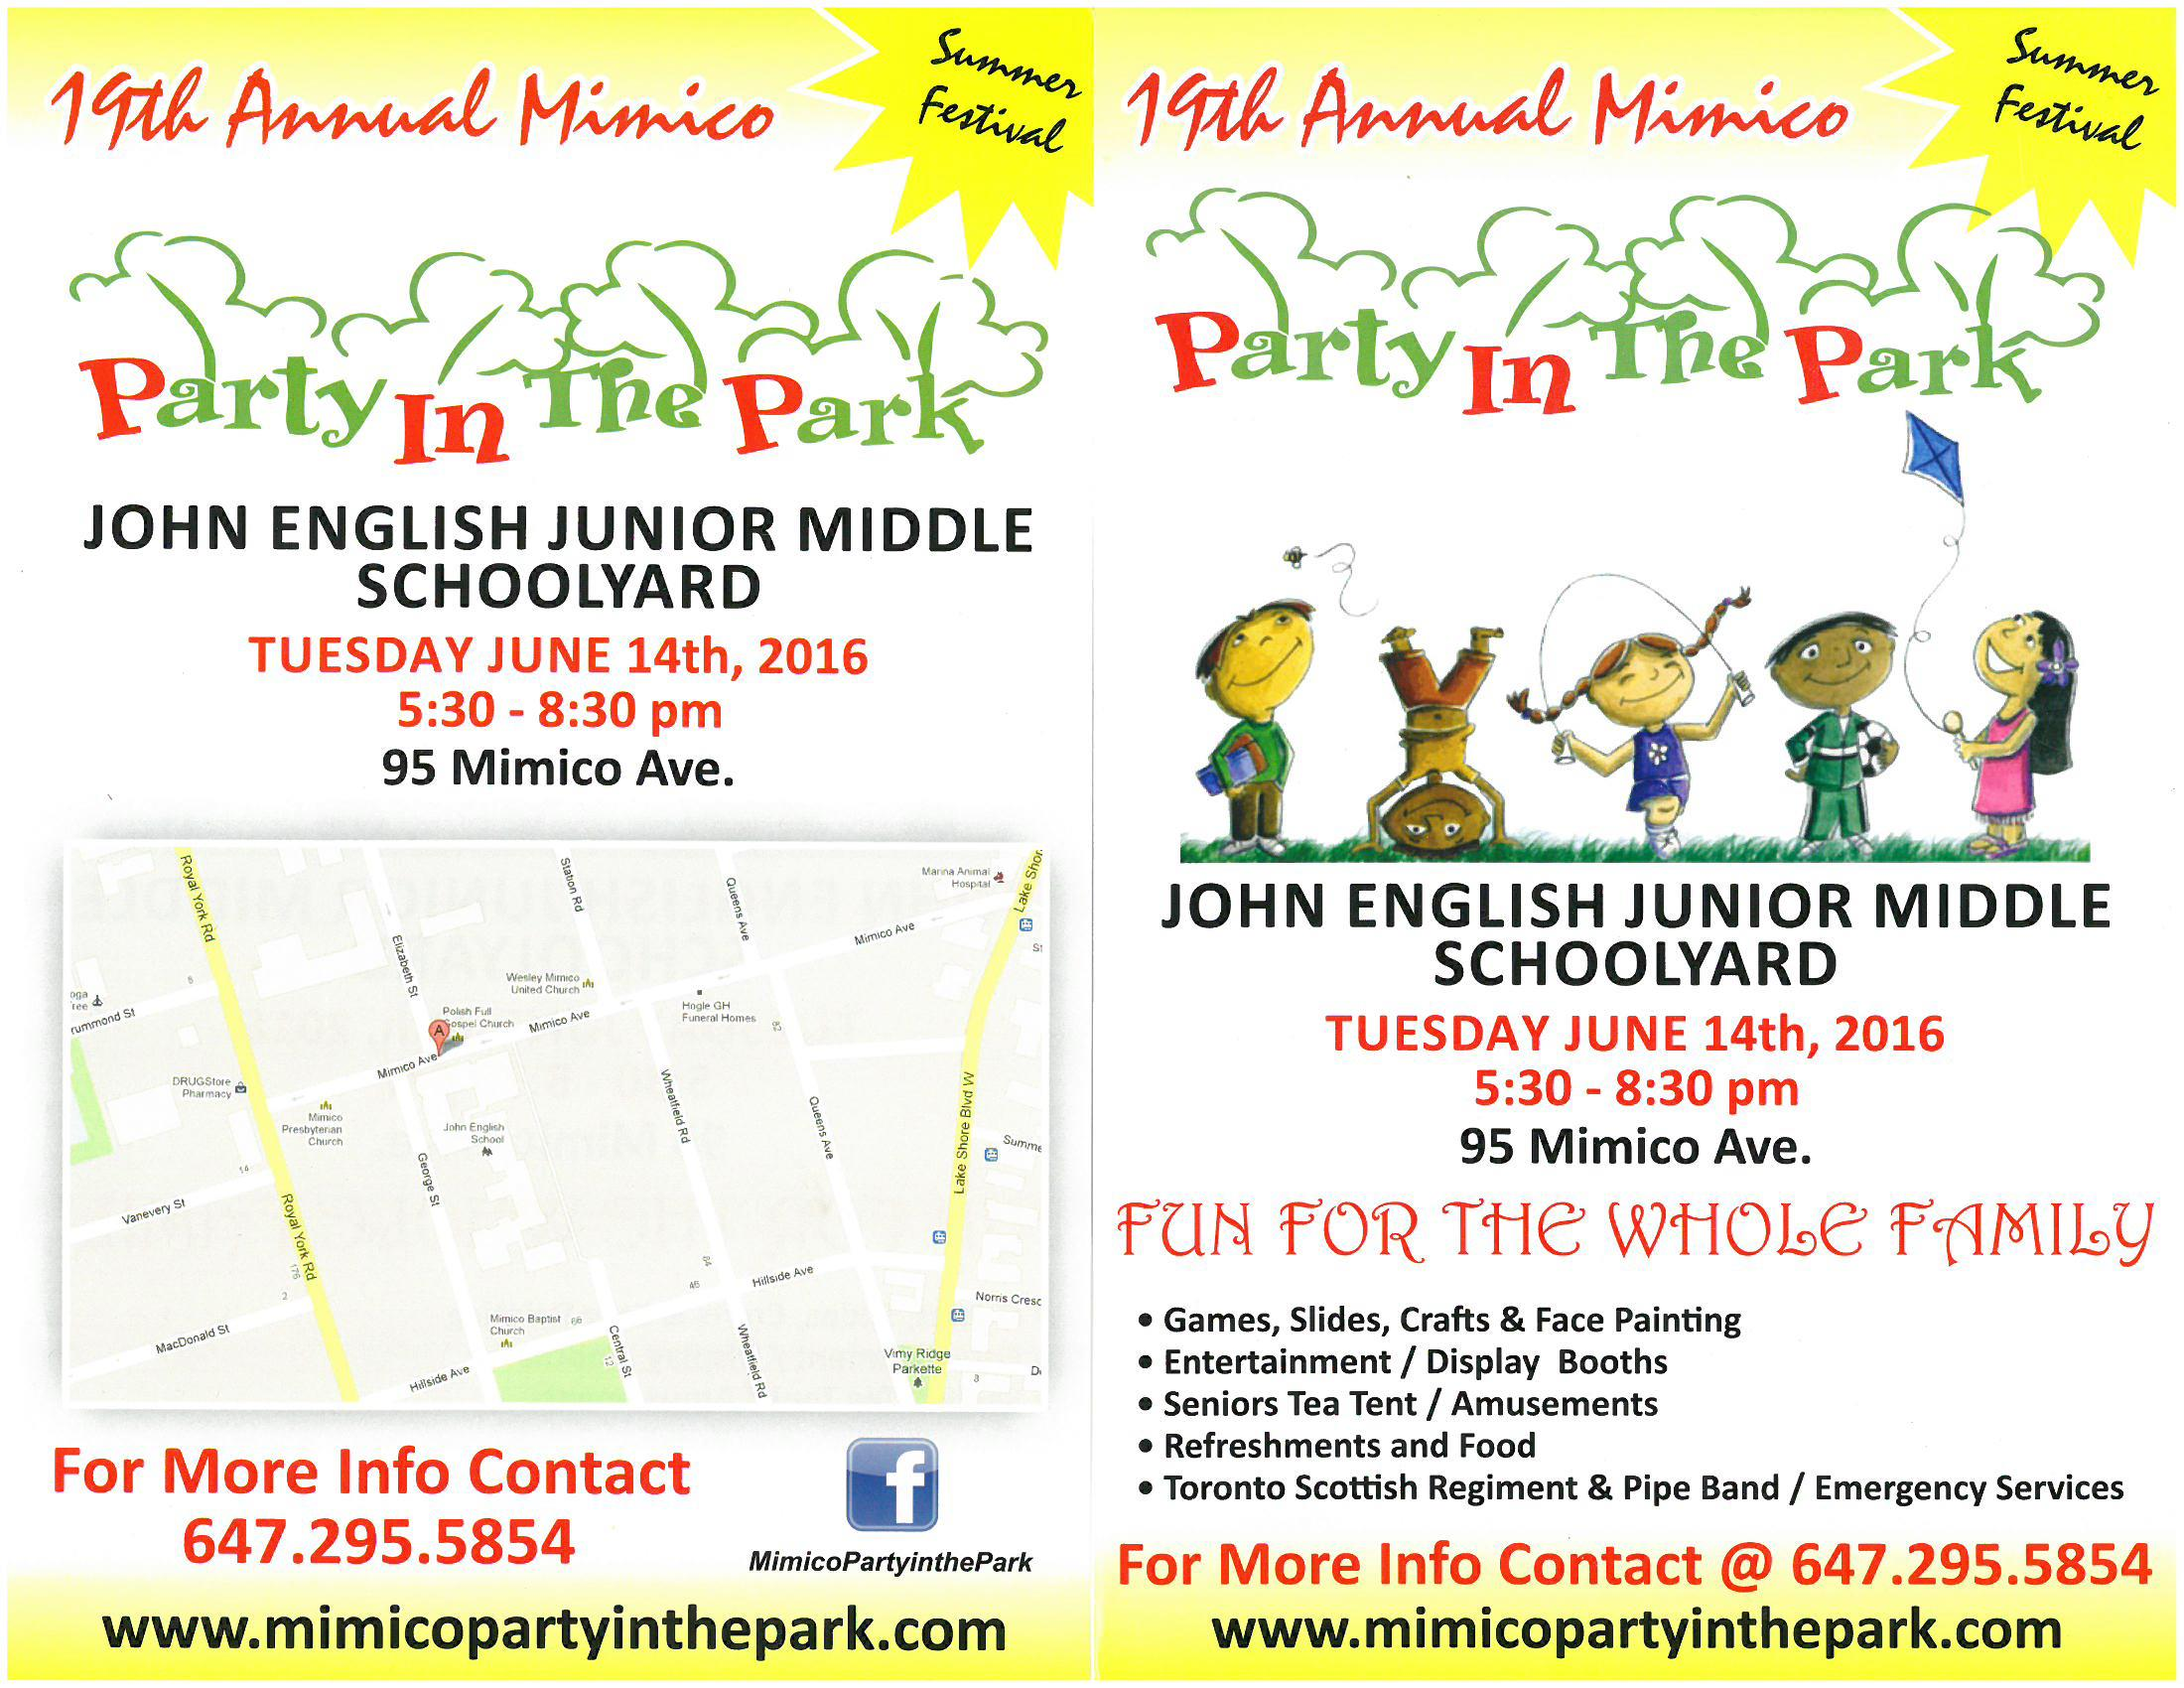 Come enjoy the Mimico Party in the Park